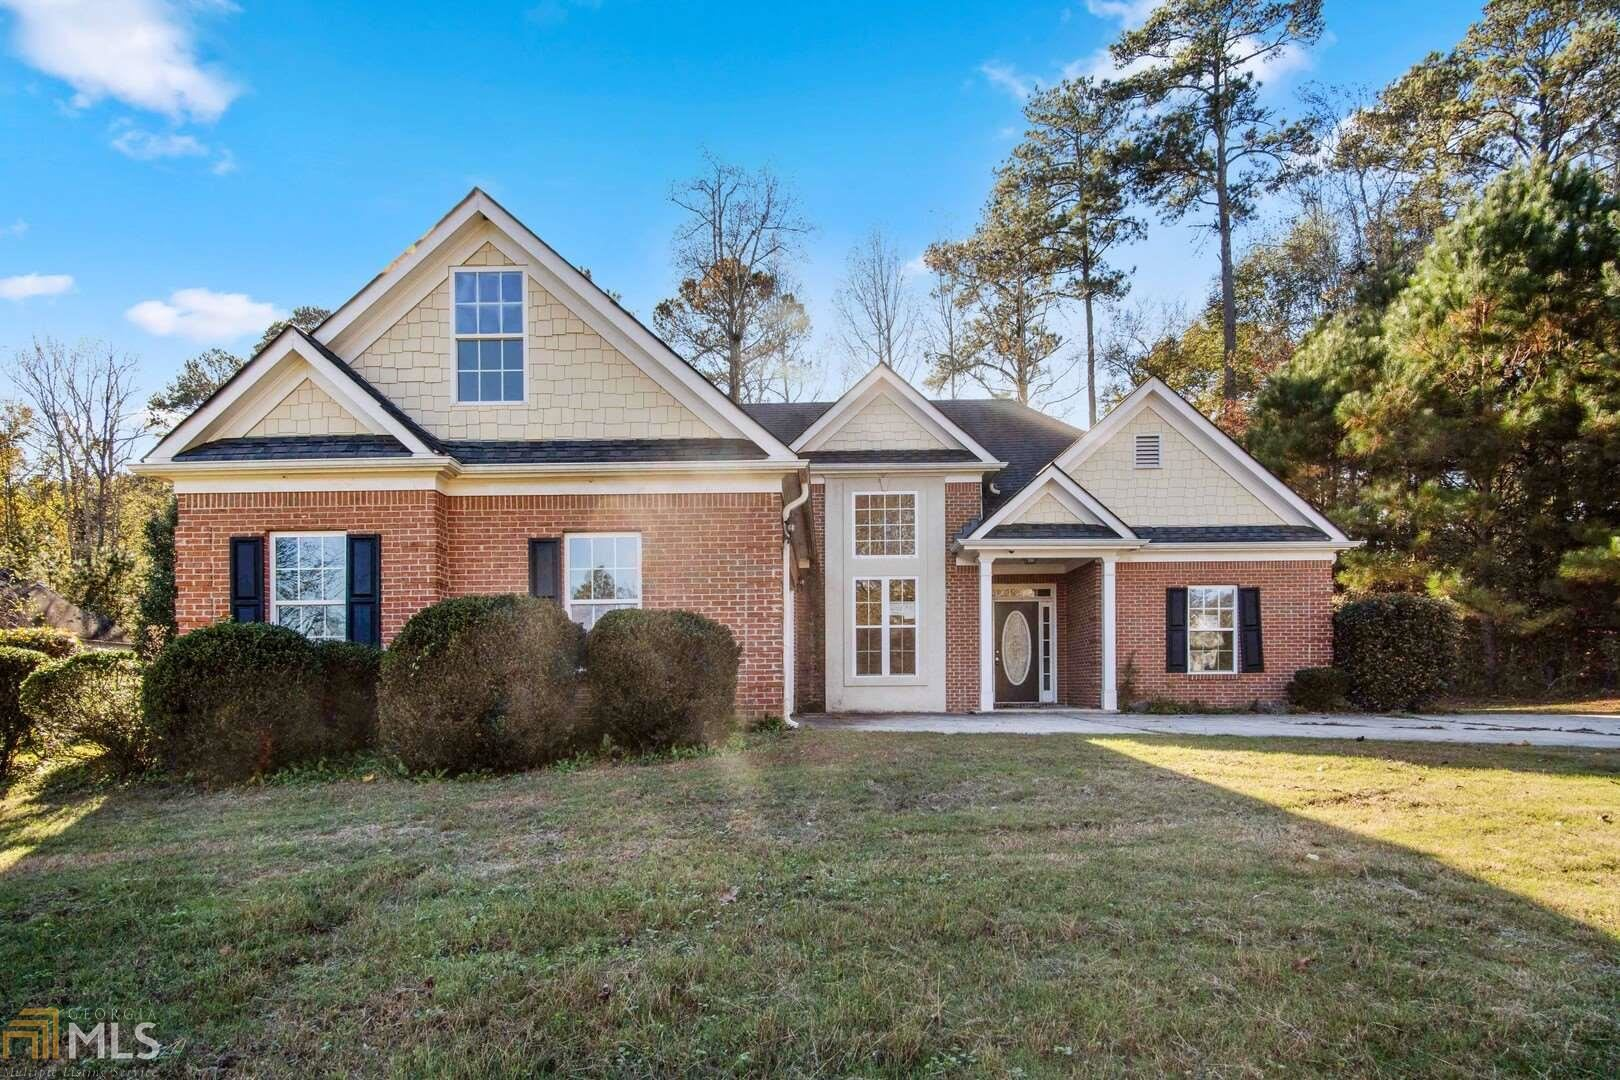 50 Blue Grass Way, Oxford, GA 30054 - #: 8891809